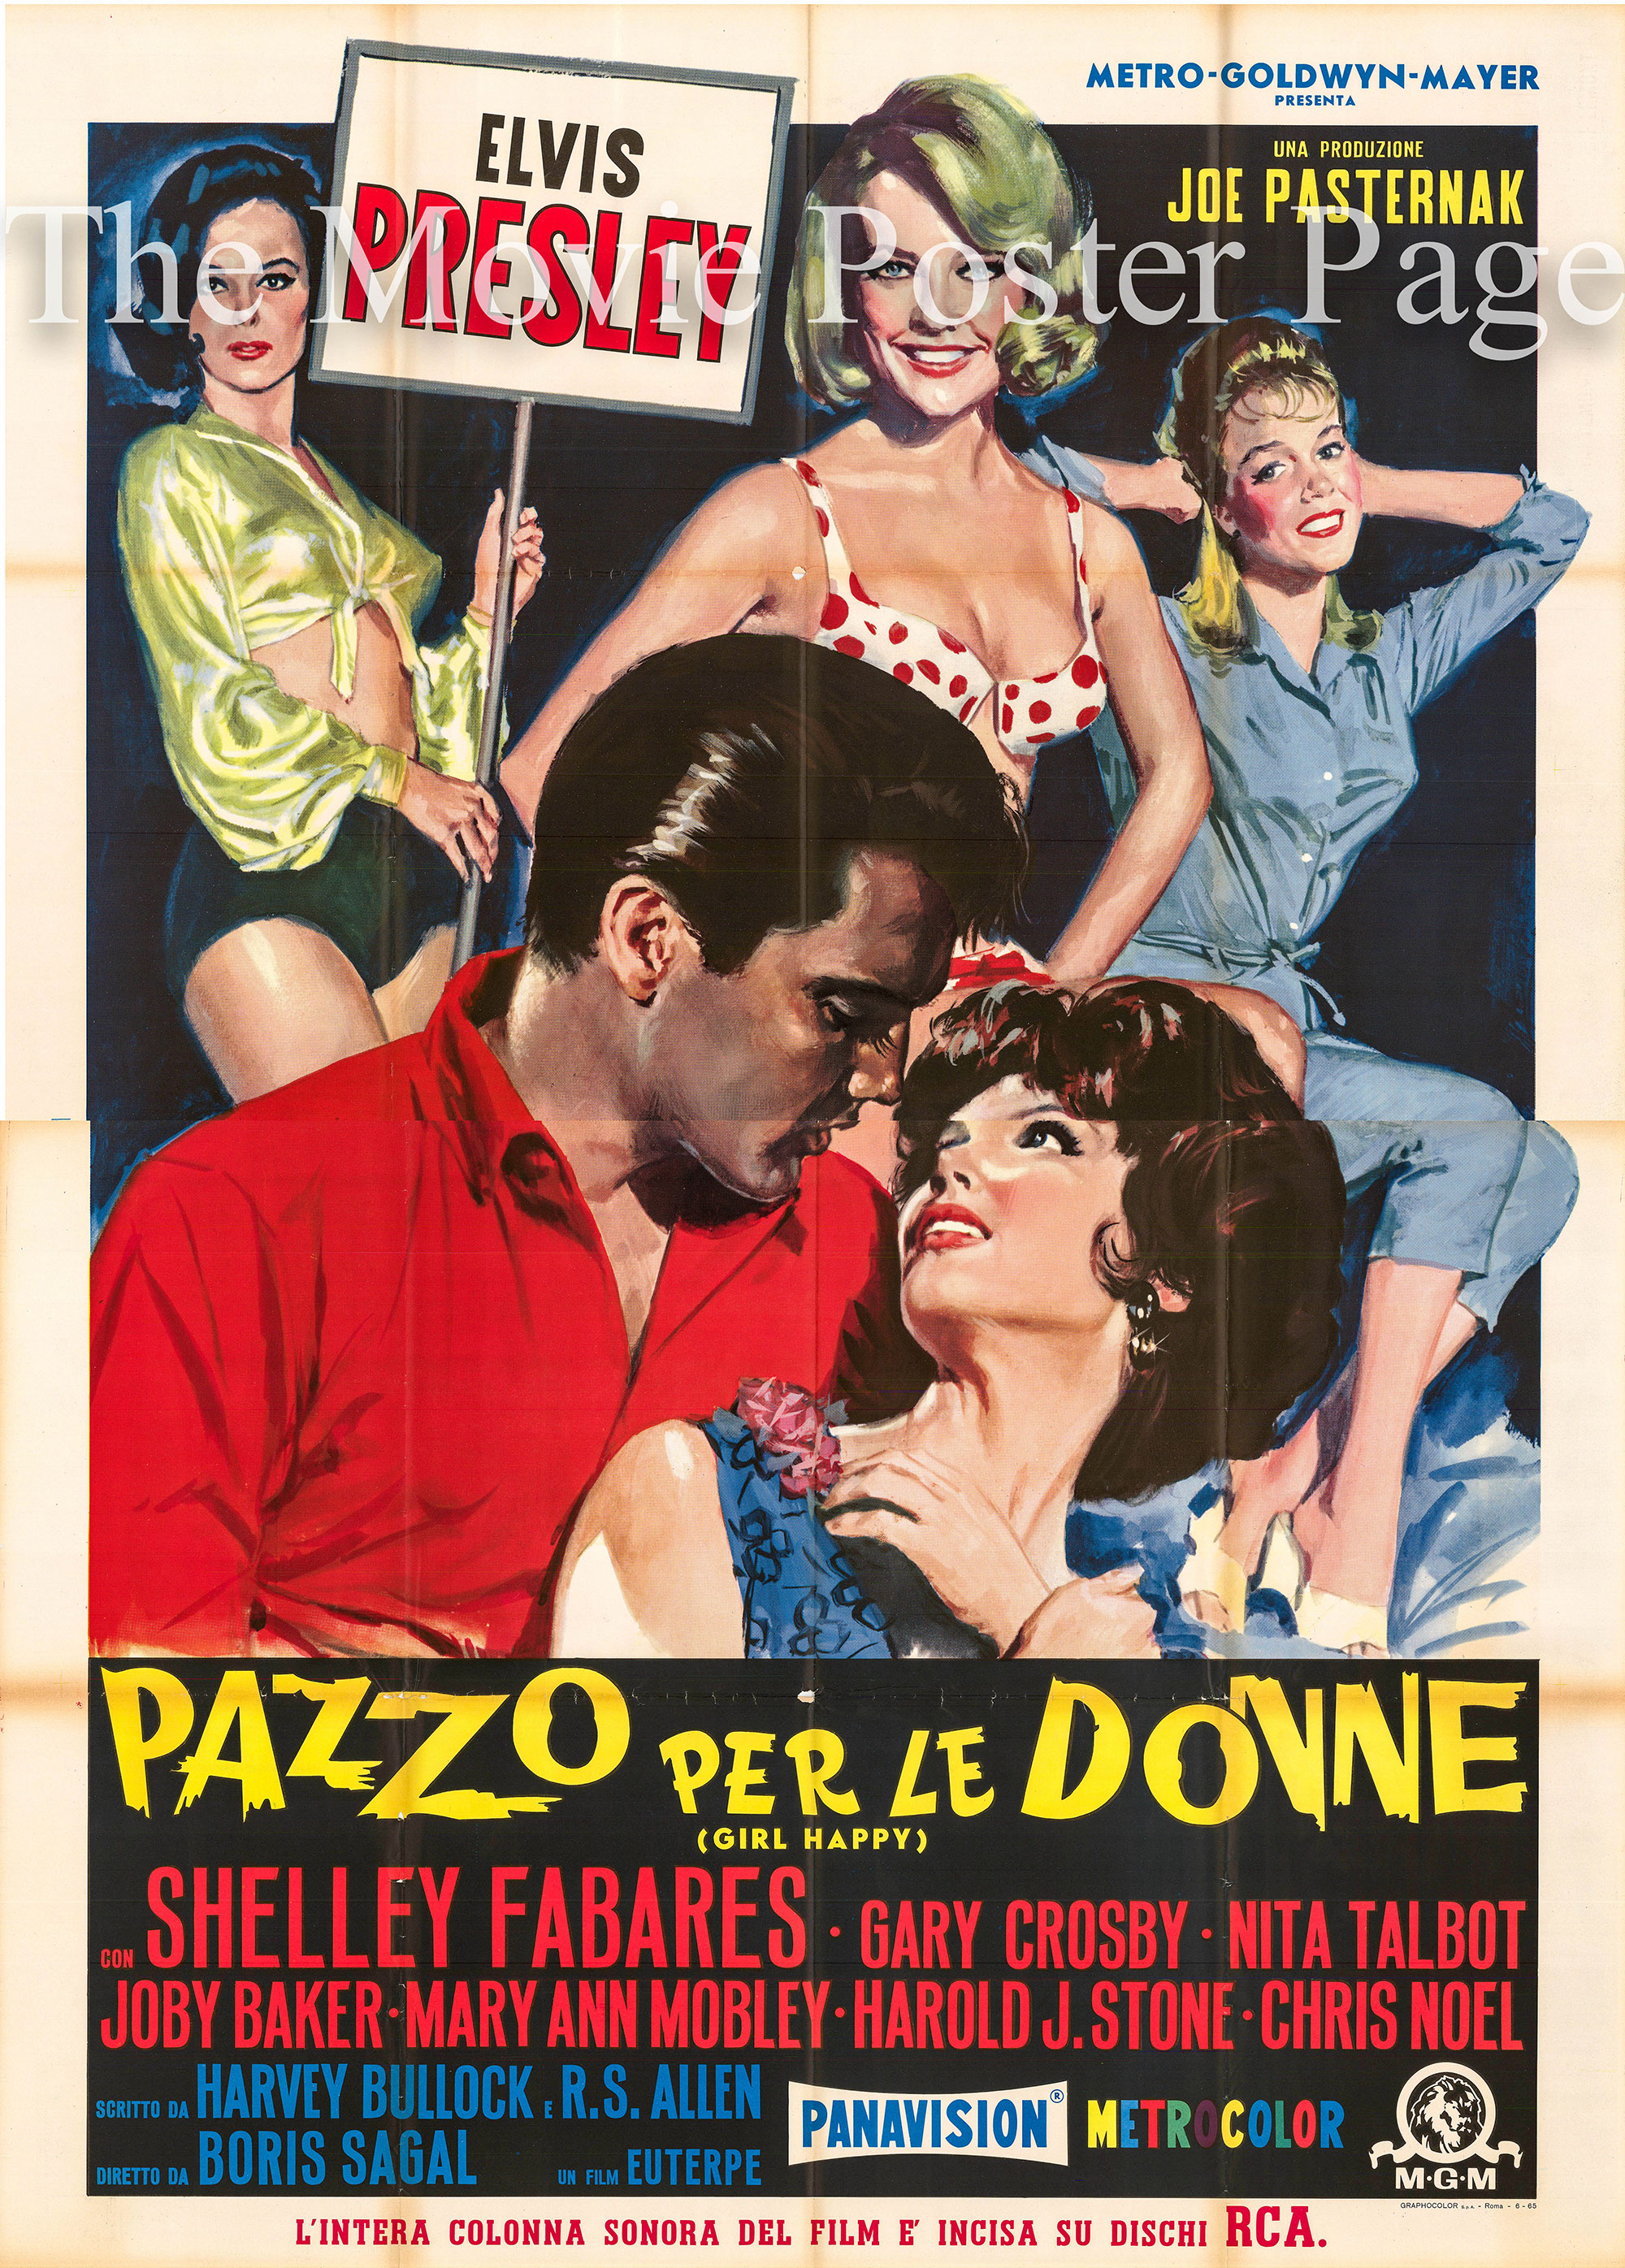 Pictured is an Italian four-sheet promotional poster for the 1965 Boris Sagal film Girl Happy starring Elvis Presley.